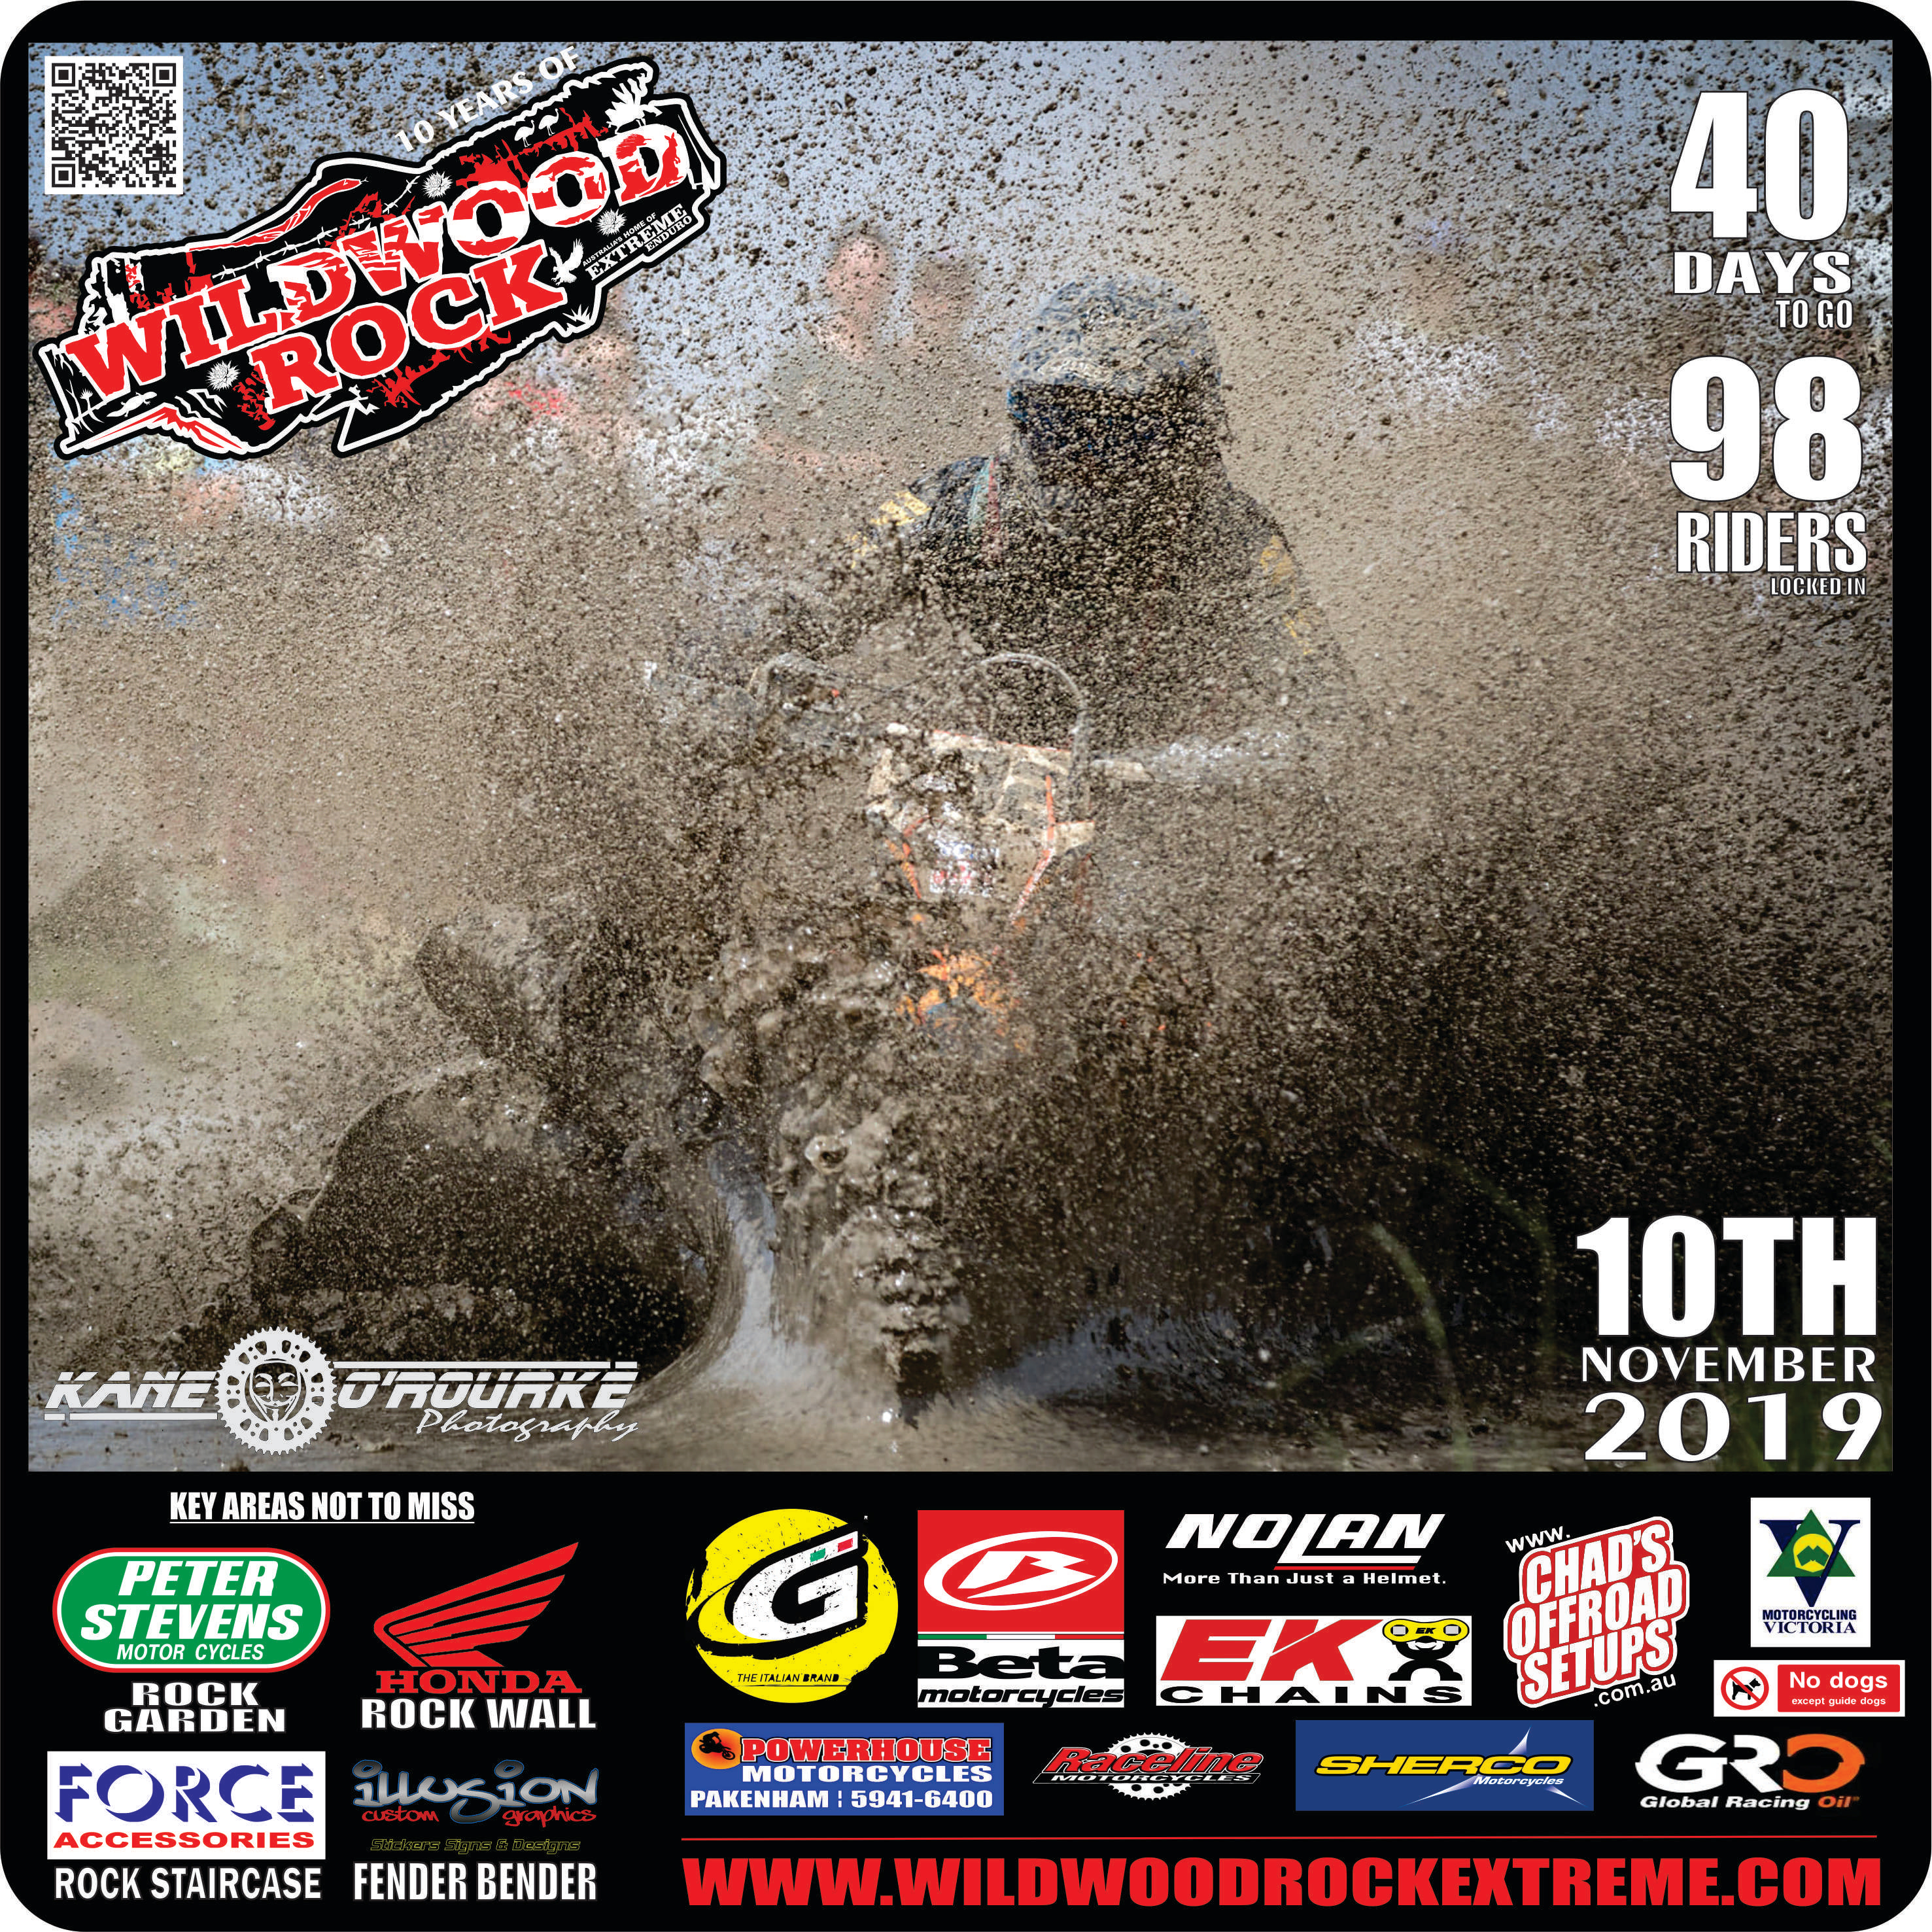 98 Riders in WWR19 - 40 DAYS